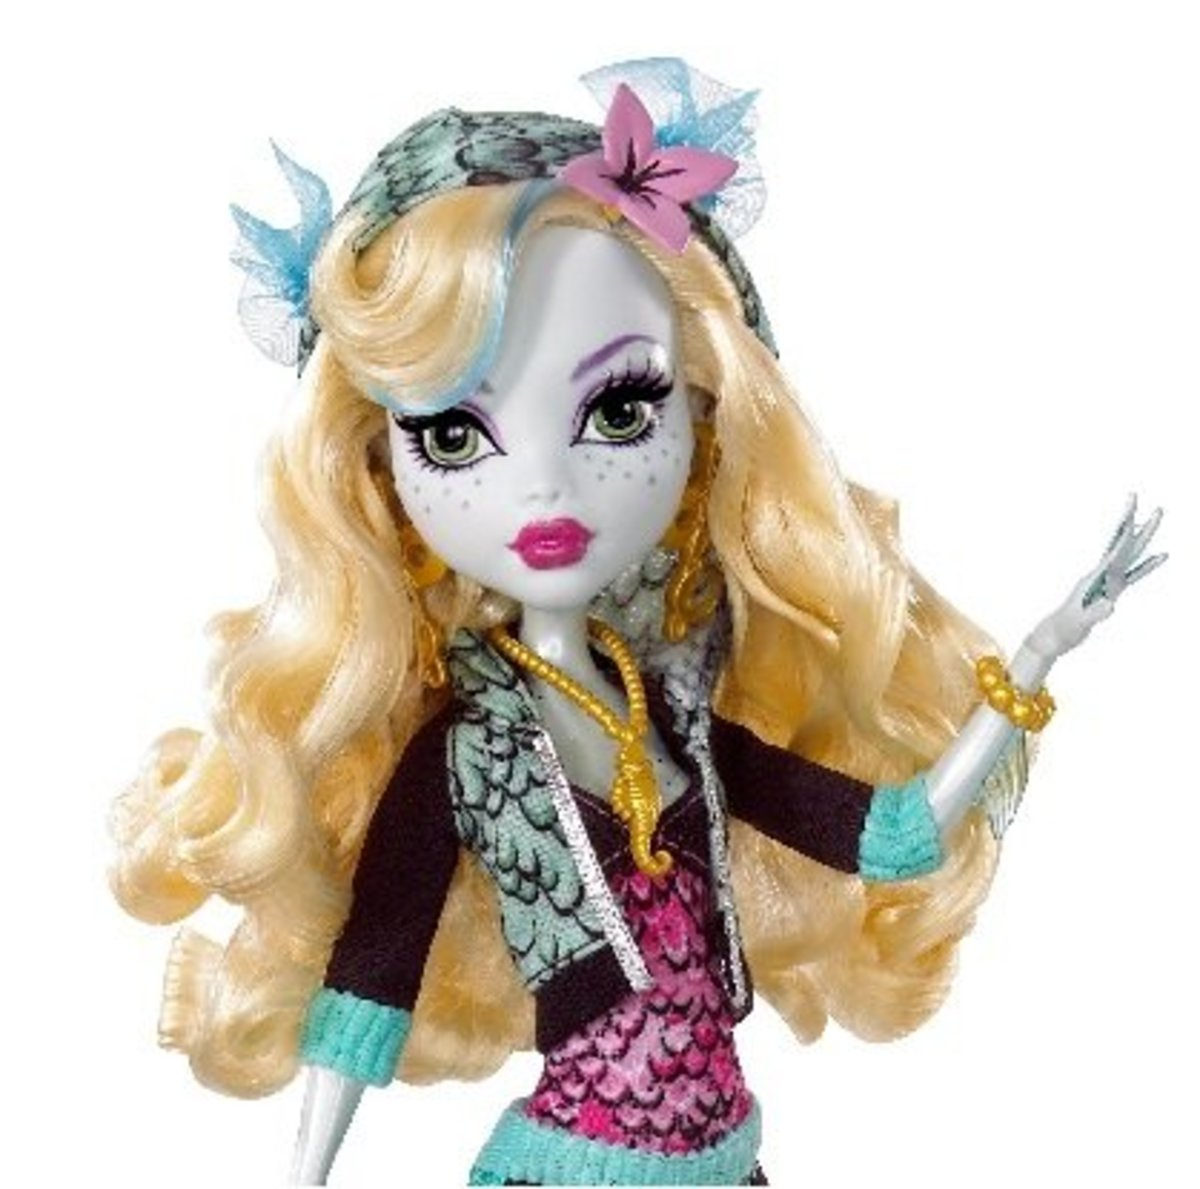 Monster High Lagoona Blue Dolls - Complete List Of Dolls